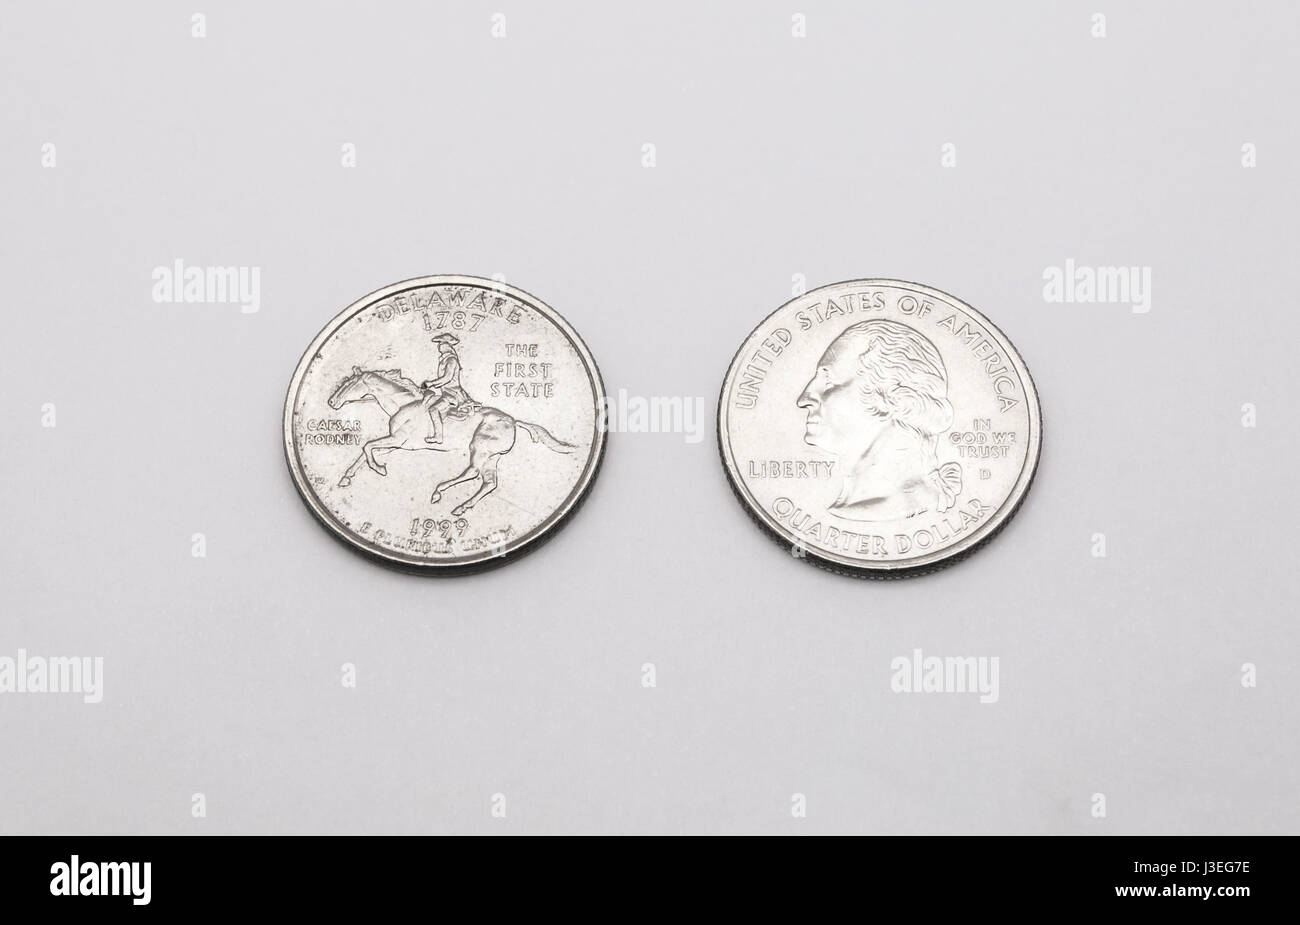 Closeup To Delaware State Symbol On Quarter Dollar Coin On White Background Stock Image